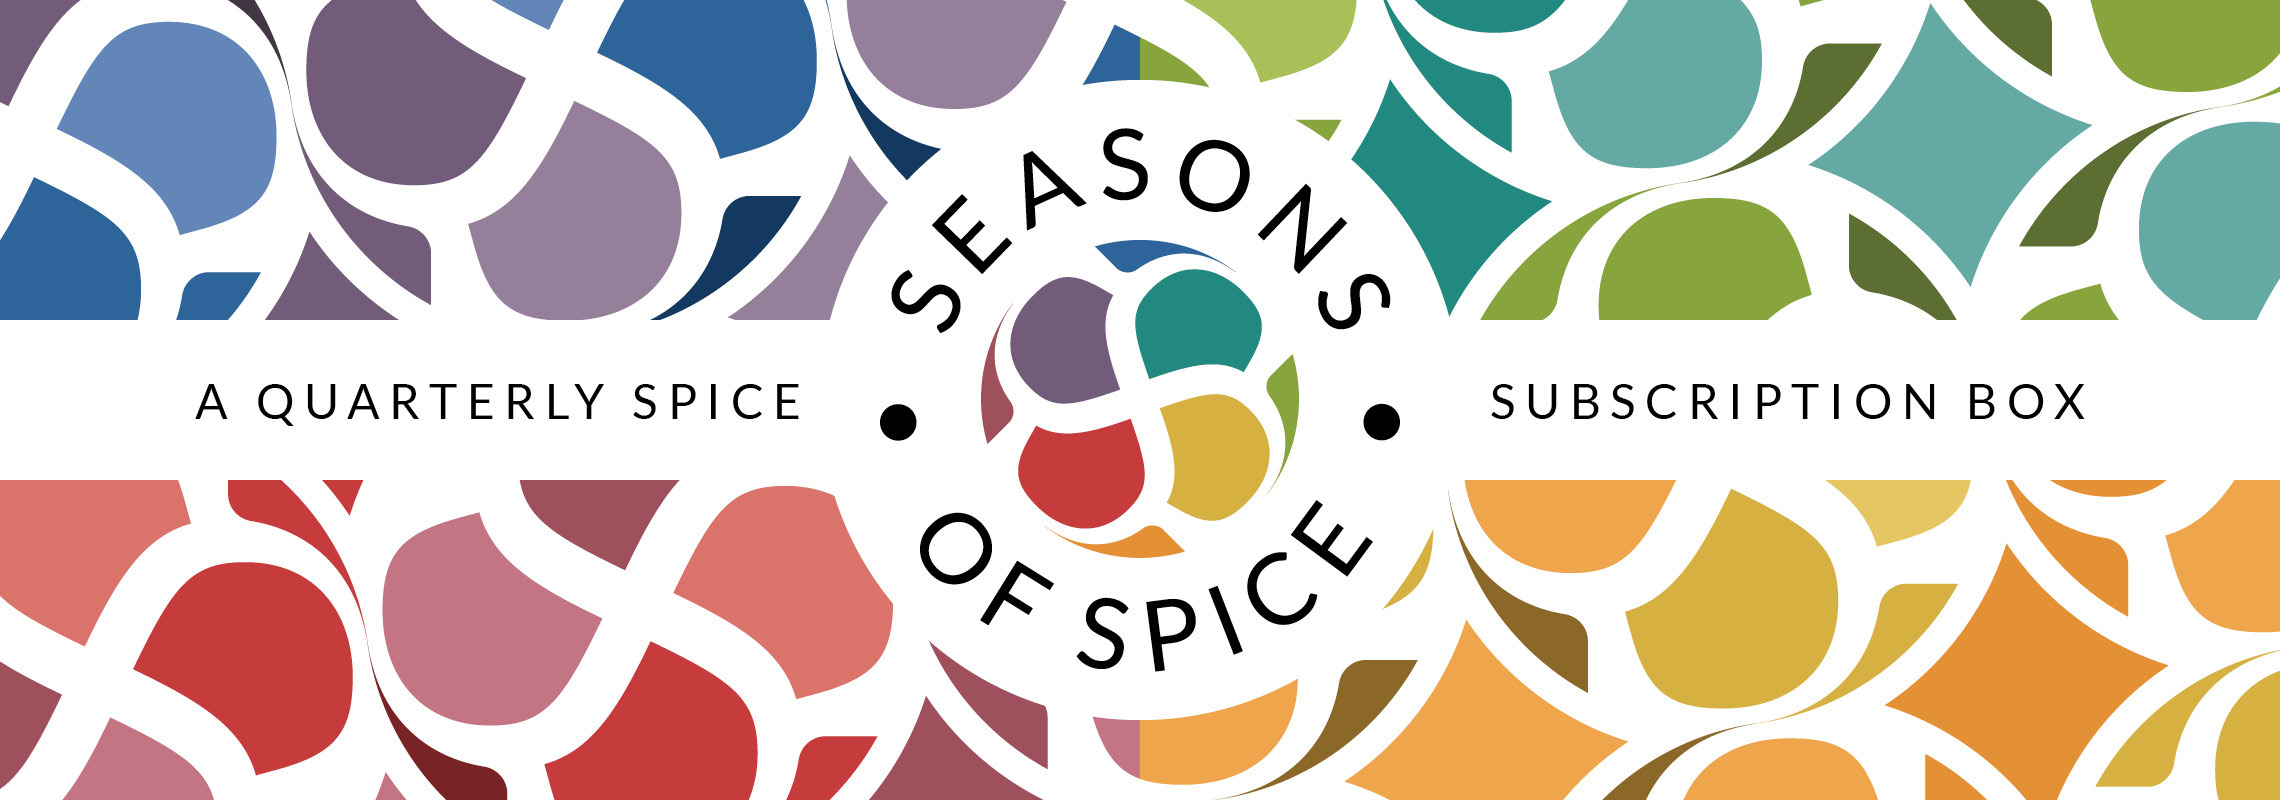 Seasons of Spice: A Quarterly Spice Subscription Box